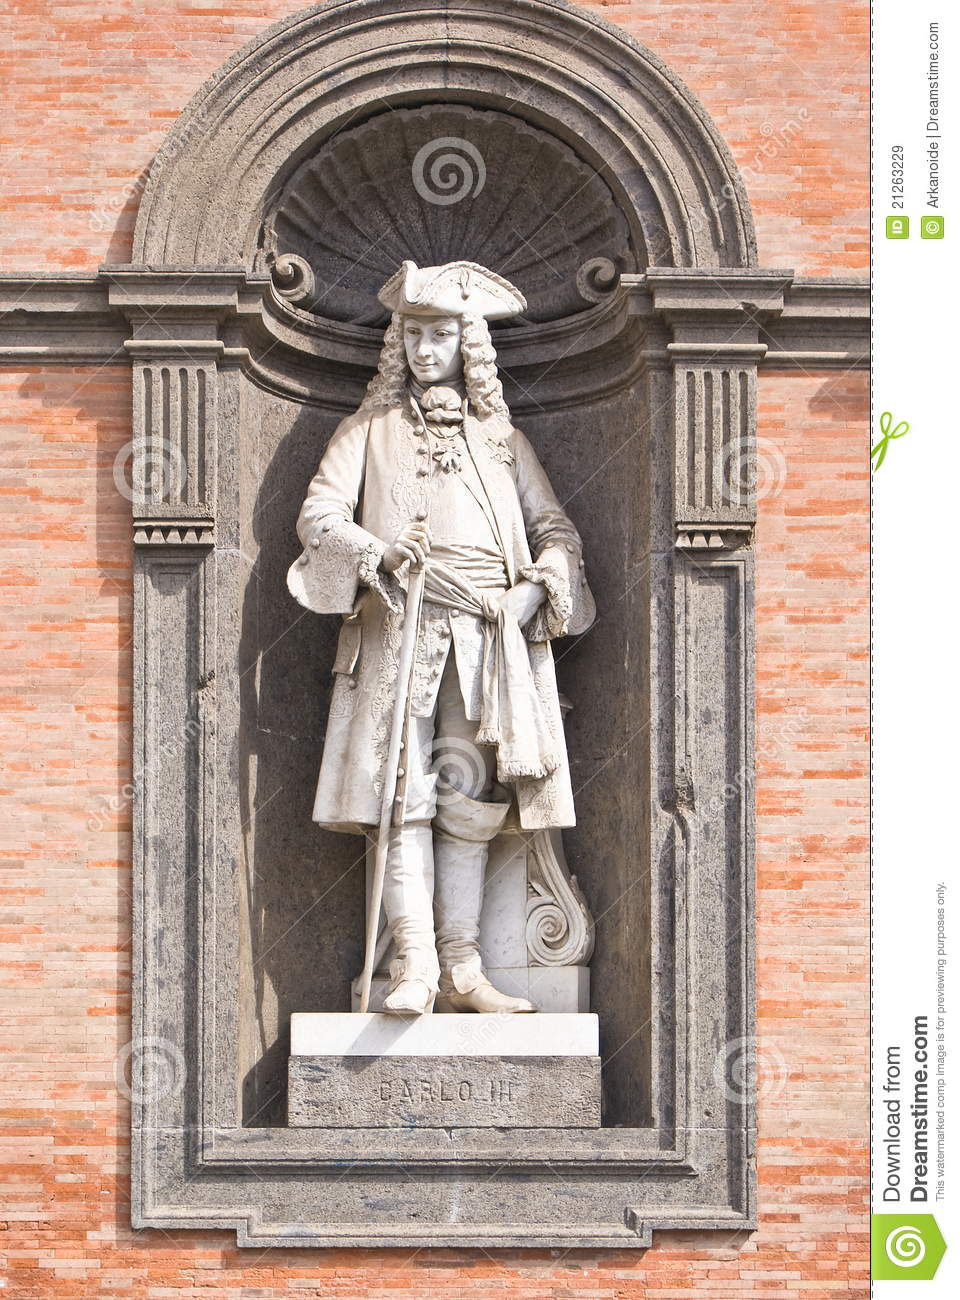 Statue In Royal Palace Naples Italy Stock Image Image